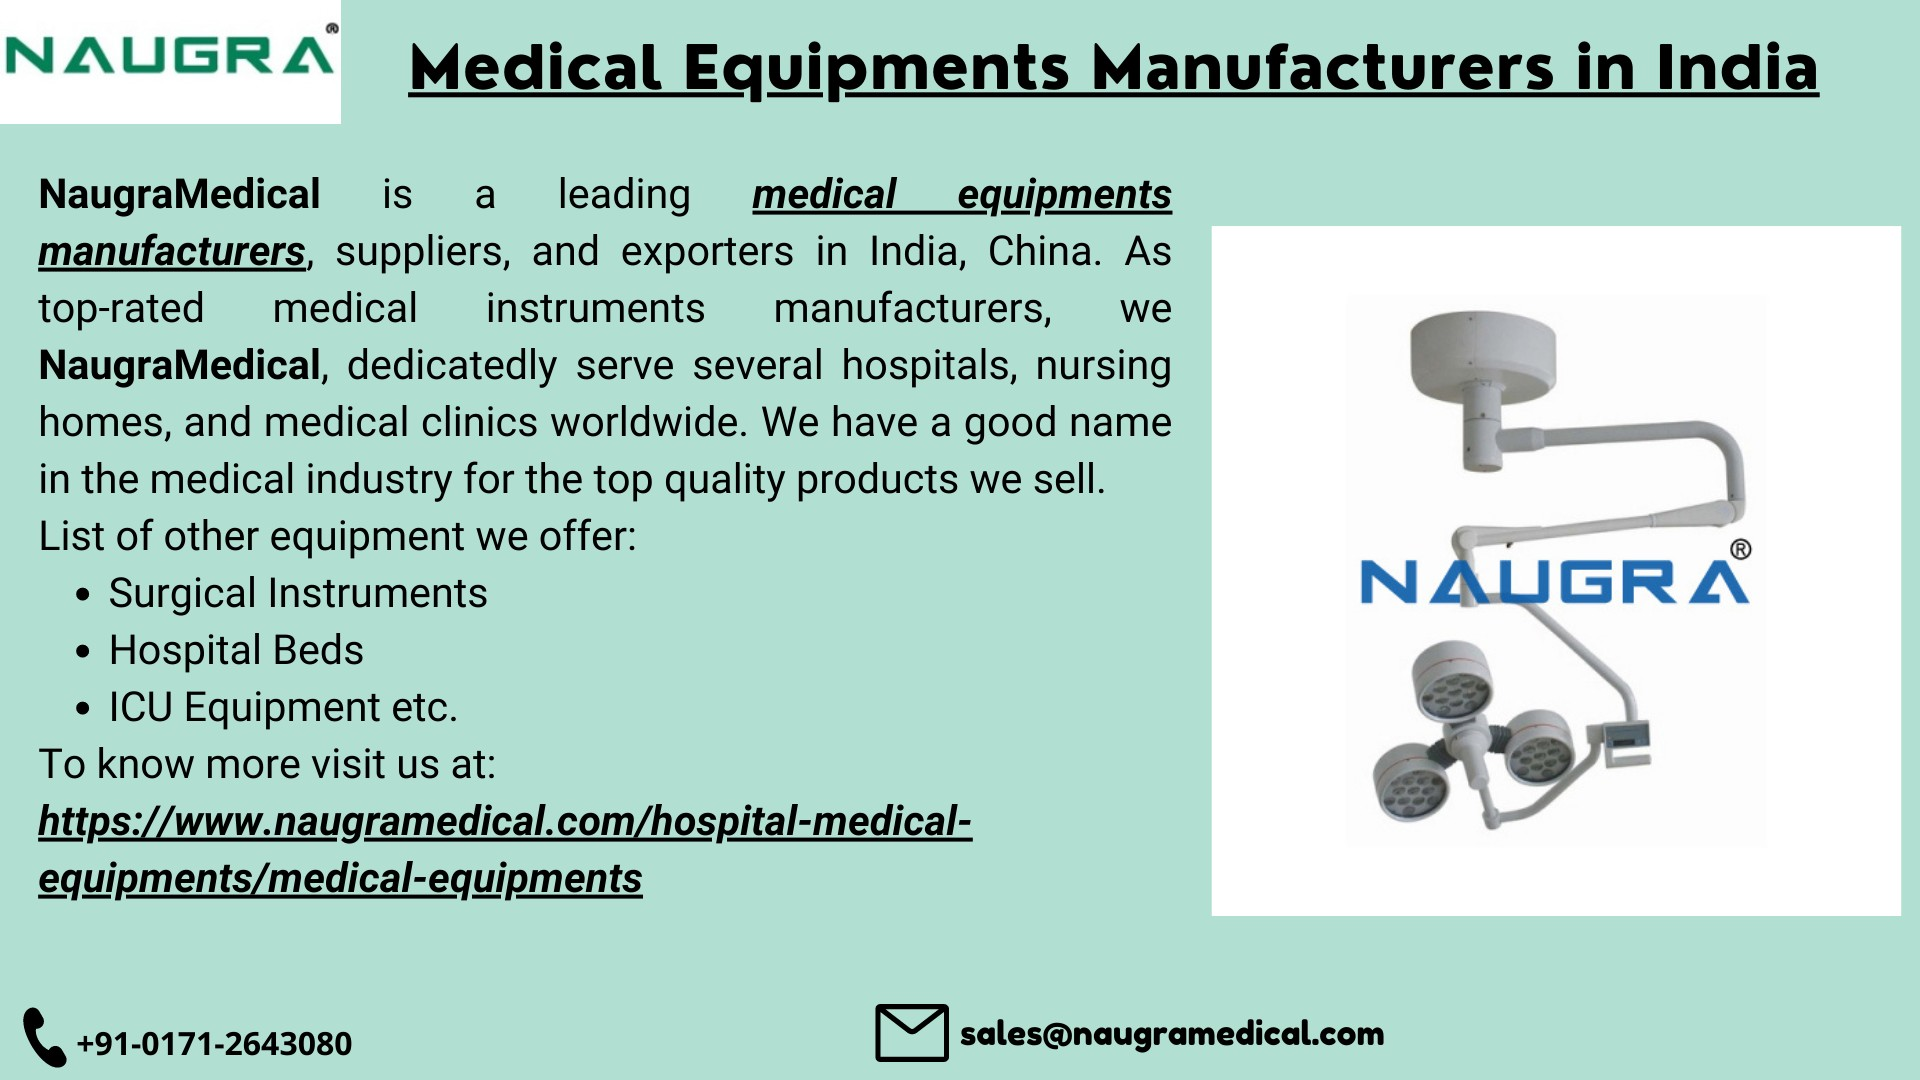 Medical Equipments Manufacturers in India